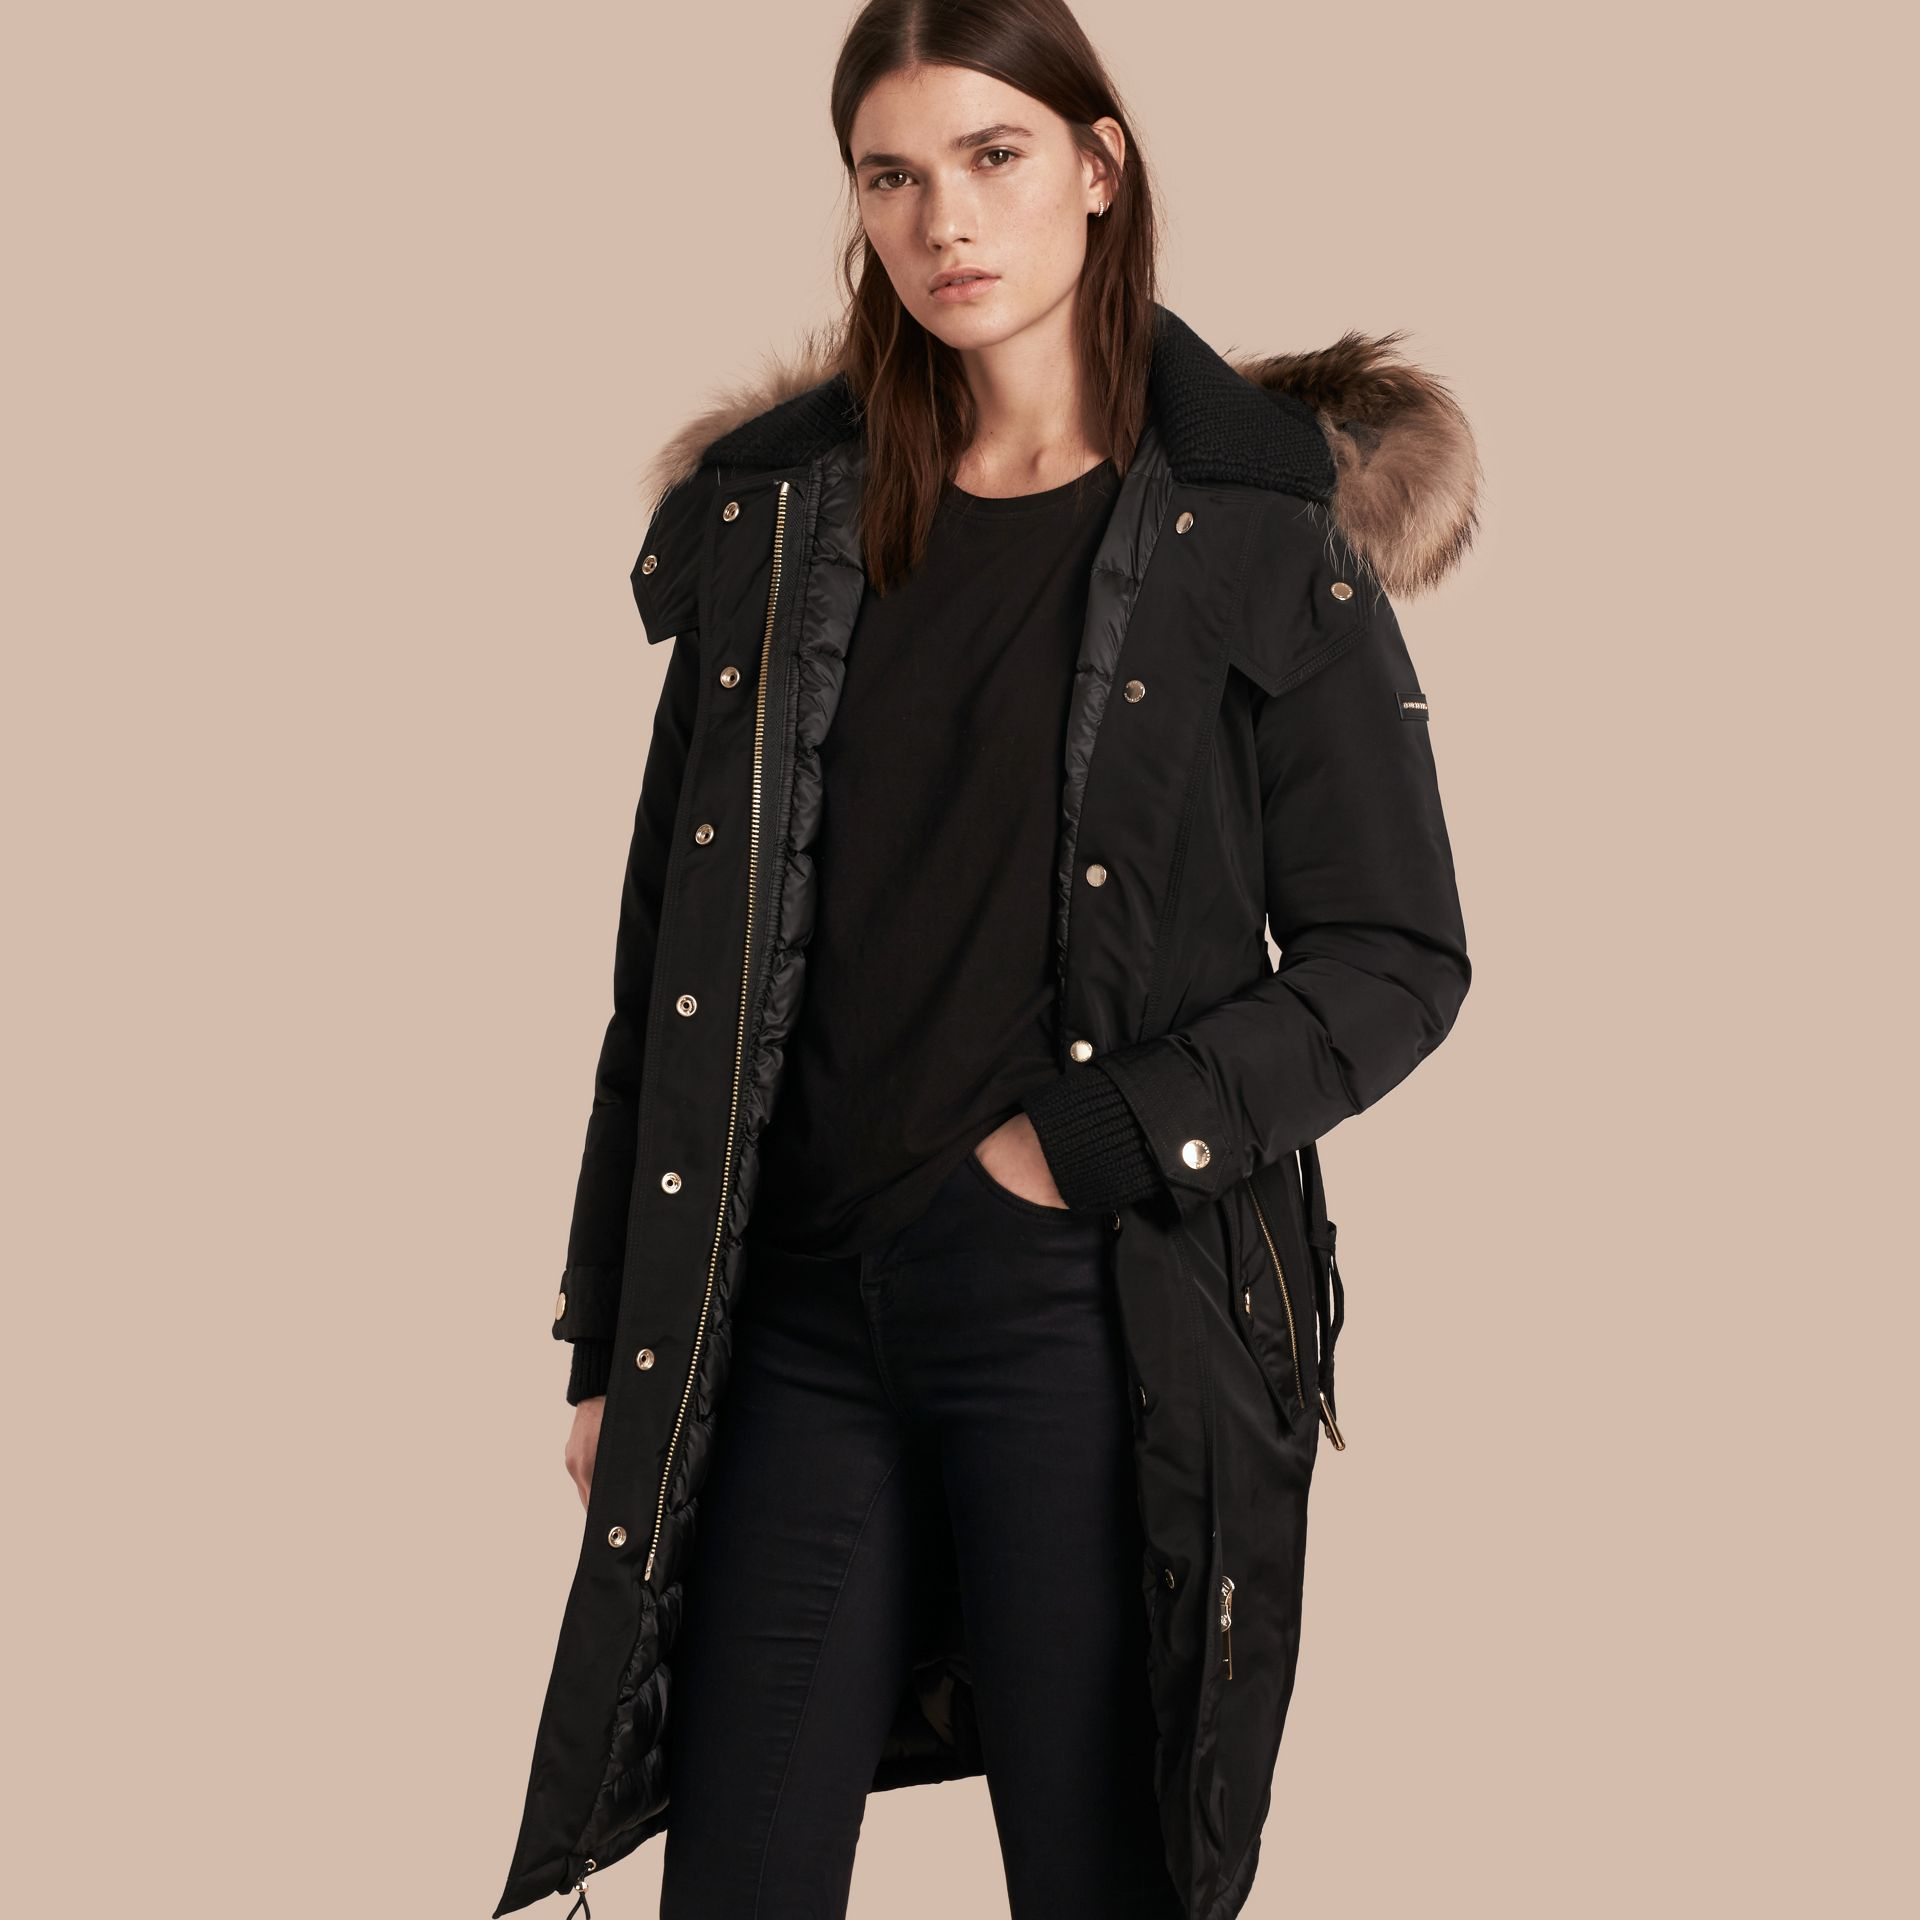 Black Down-filled Parka Coat with Detachable Fur Trim Black - gallery image 1